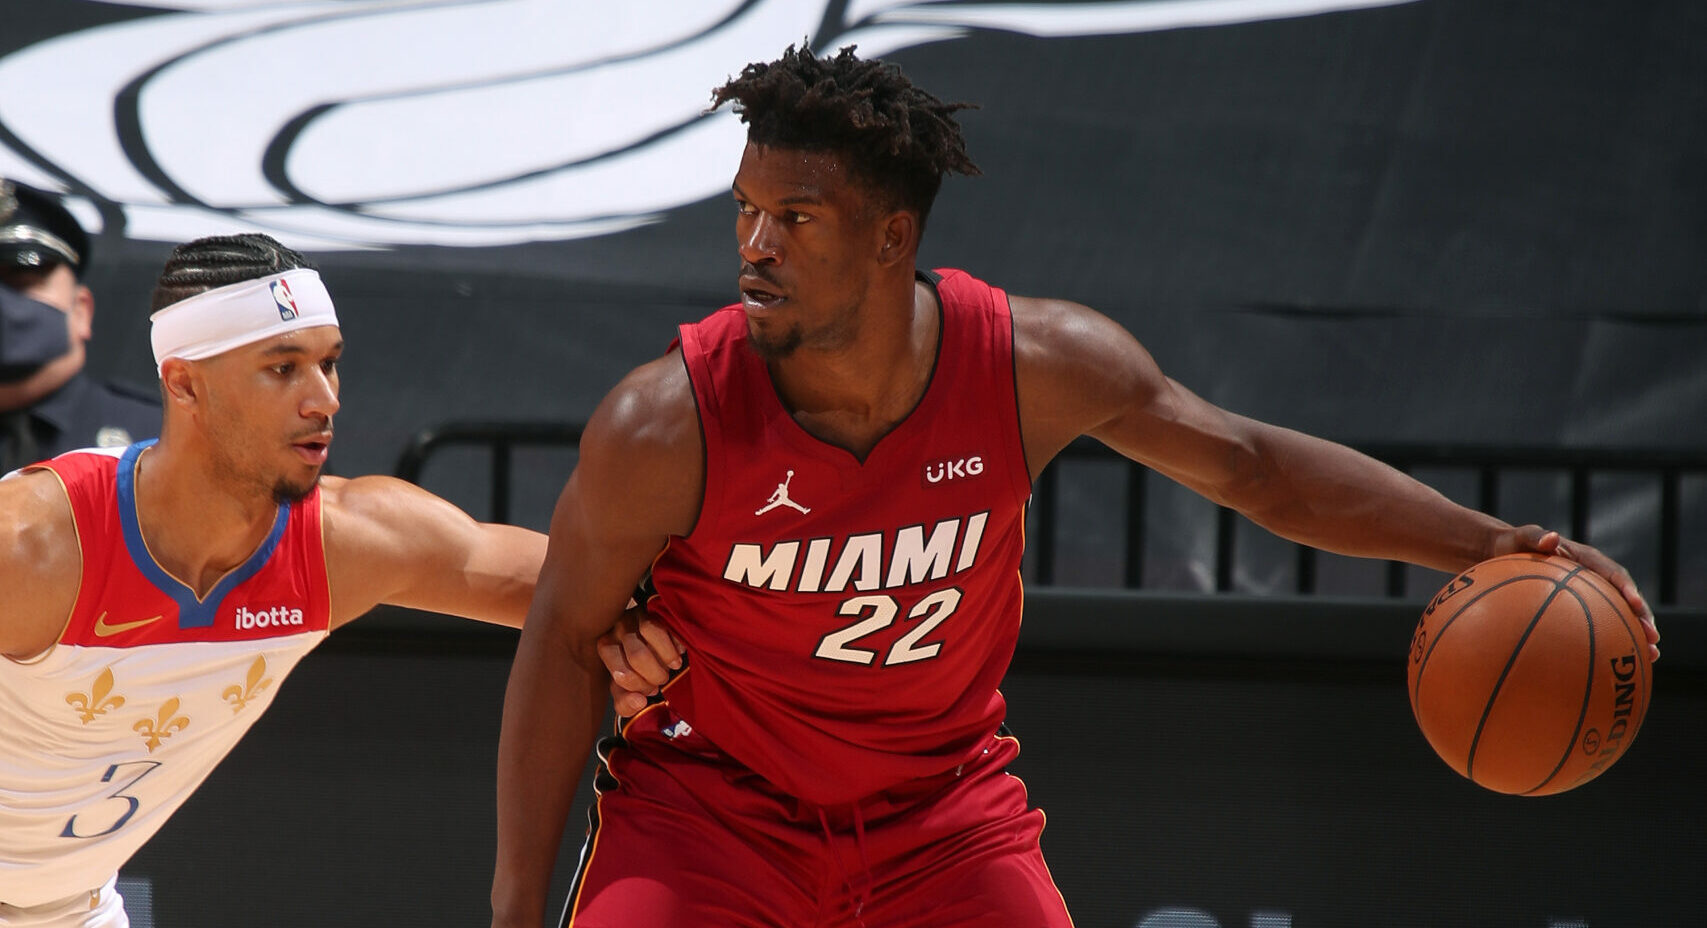 Heat's Jimmy Butler (ankle) exits game vs. Pelicans, does not return